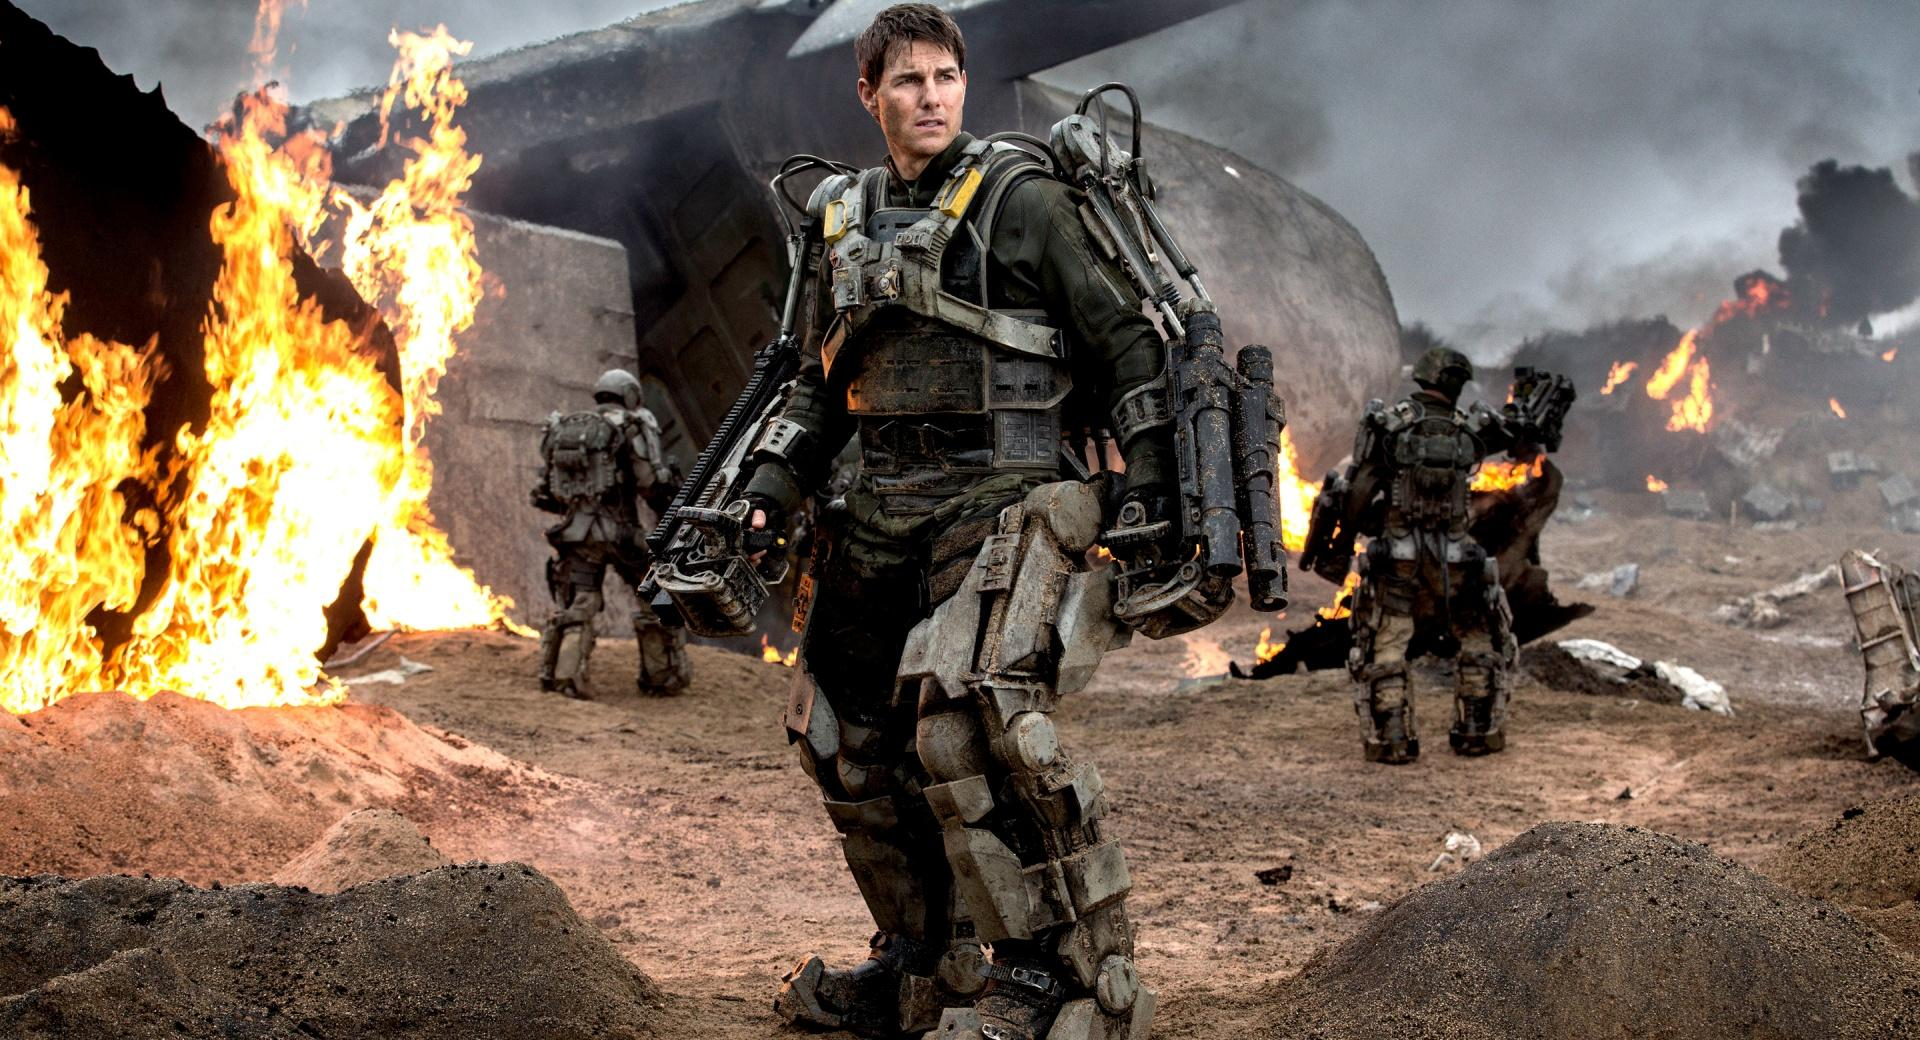 Edge of Tomorrow Aliens wallpapers HD quality